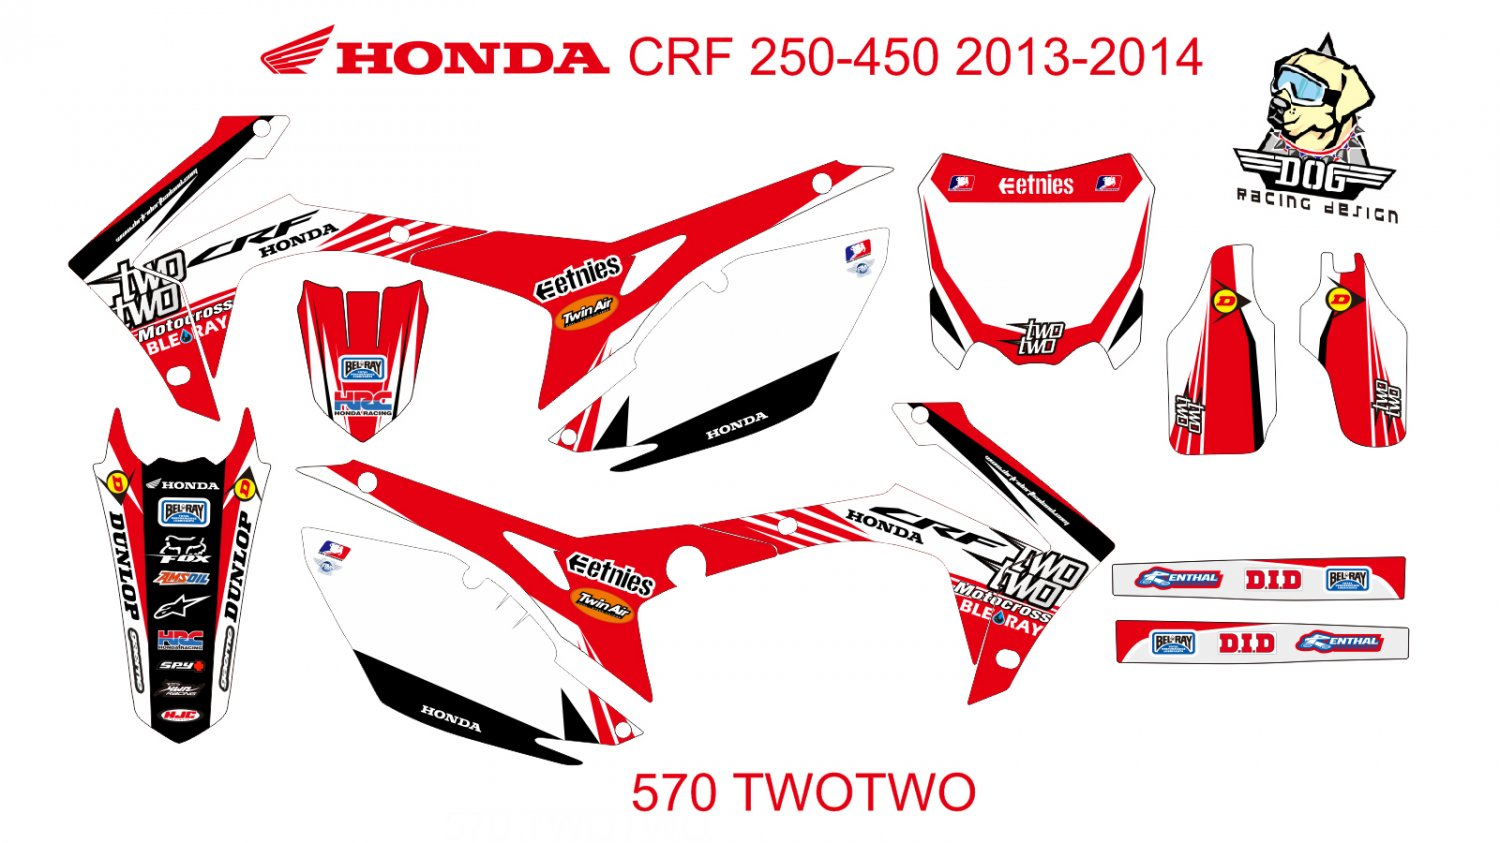 HONDA CRF 250-450 2013-2014 GRAPHIC DECAL KIT CODE.570